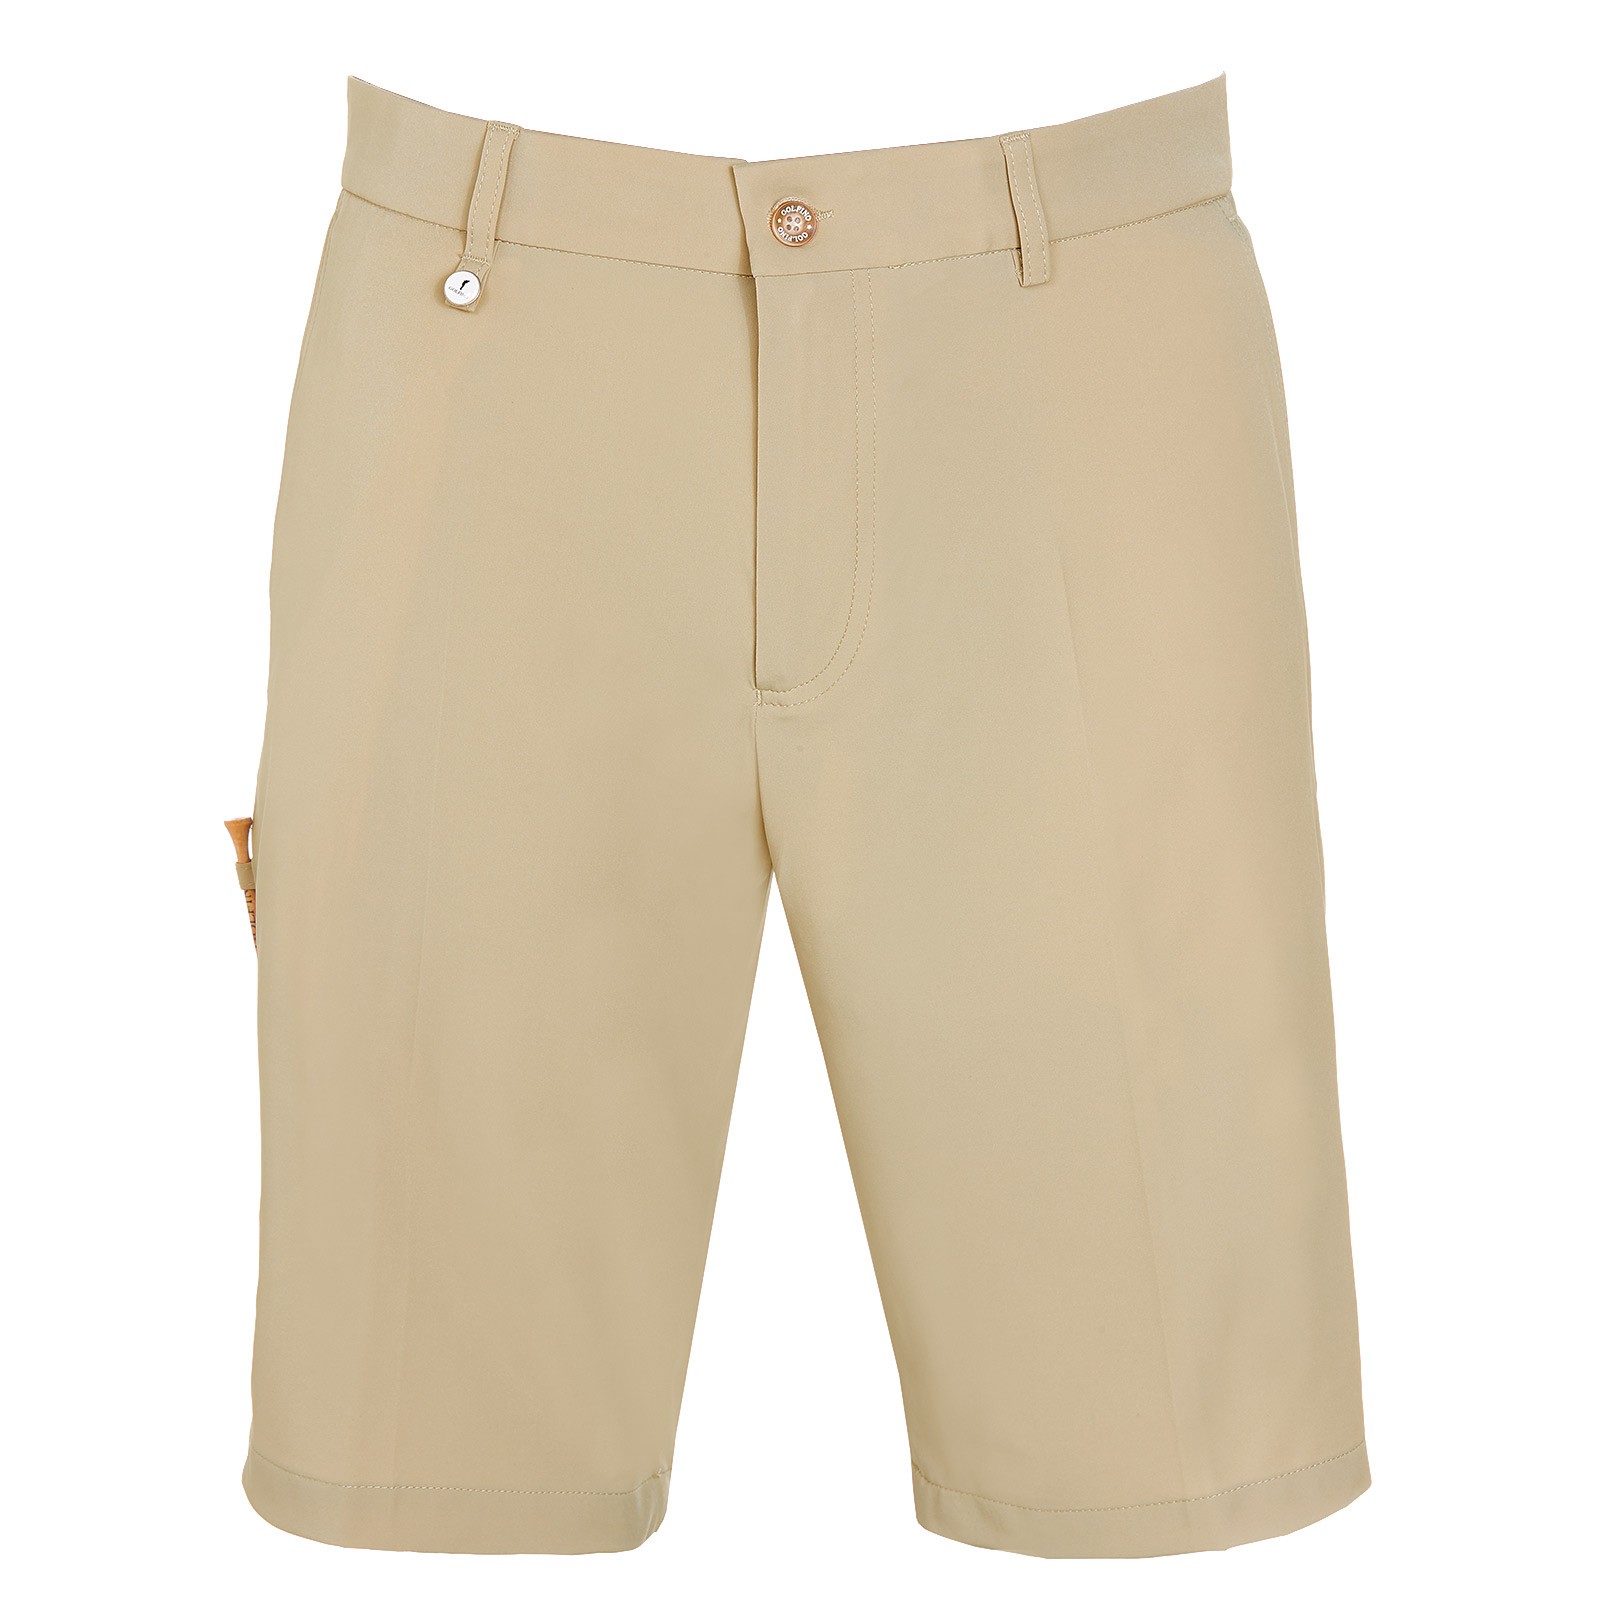 Men's golf Bermudas with slight stretch element